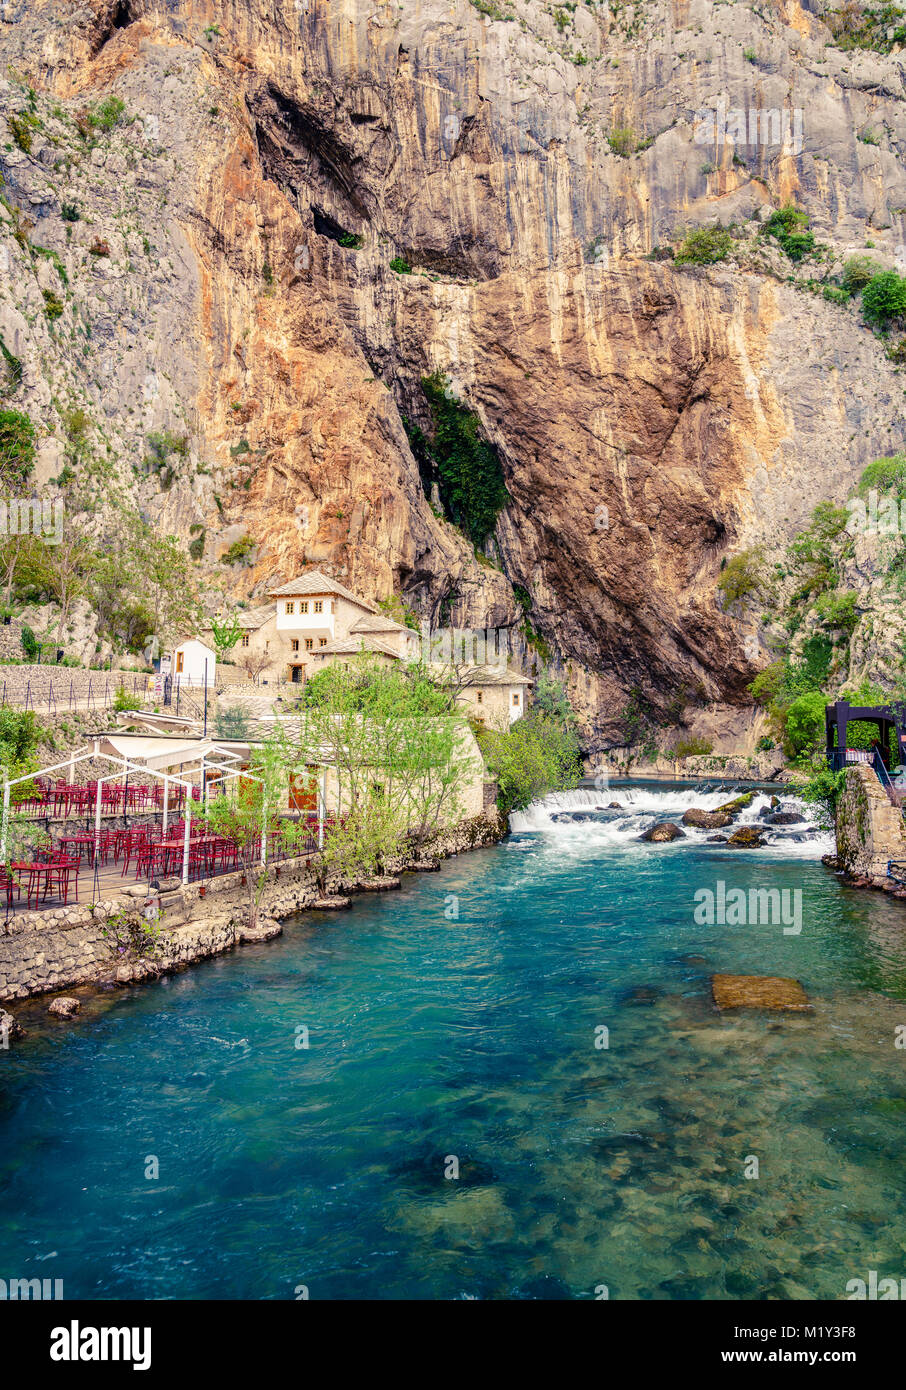 Dervish monastery or tekke at the Buna River spring in the town of Blagaj, Bosnia Stock Photo